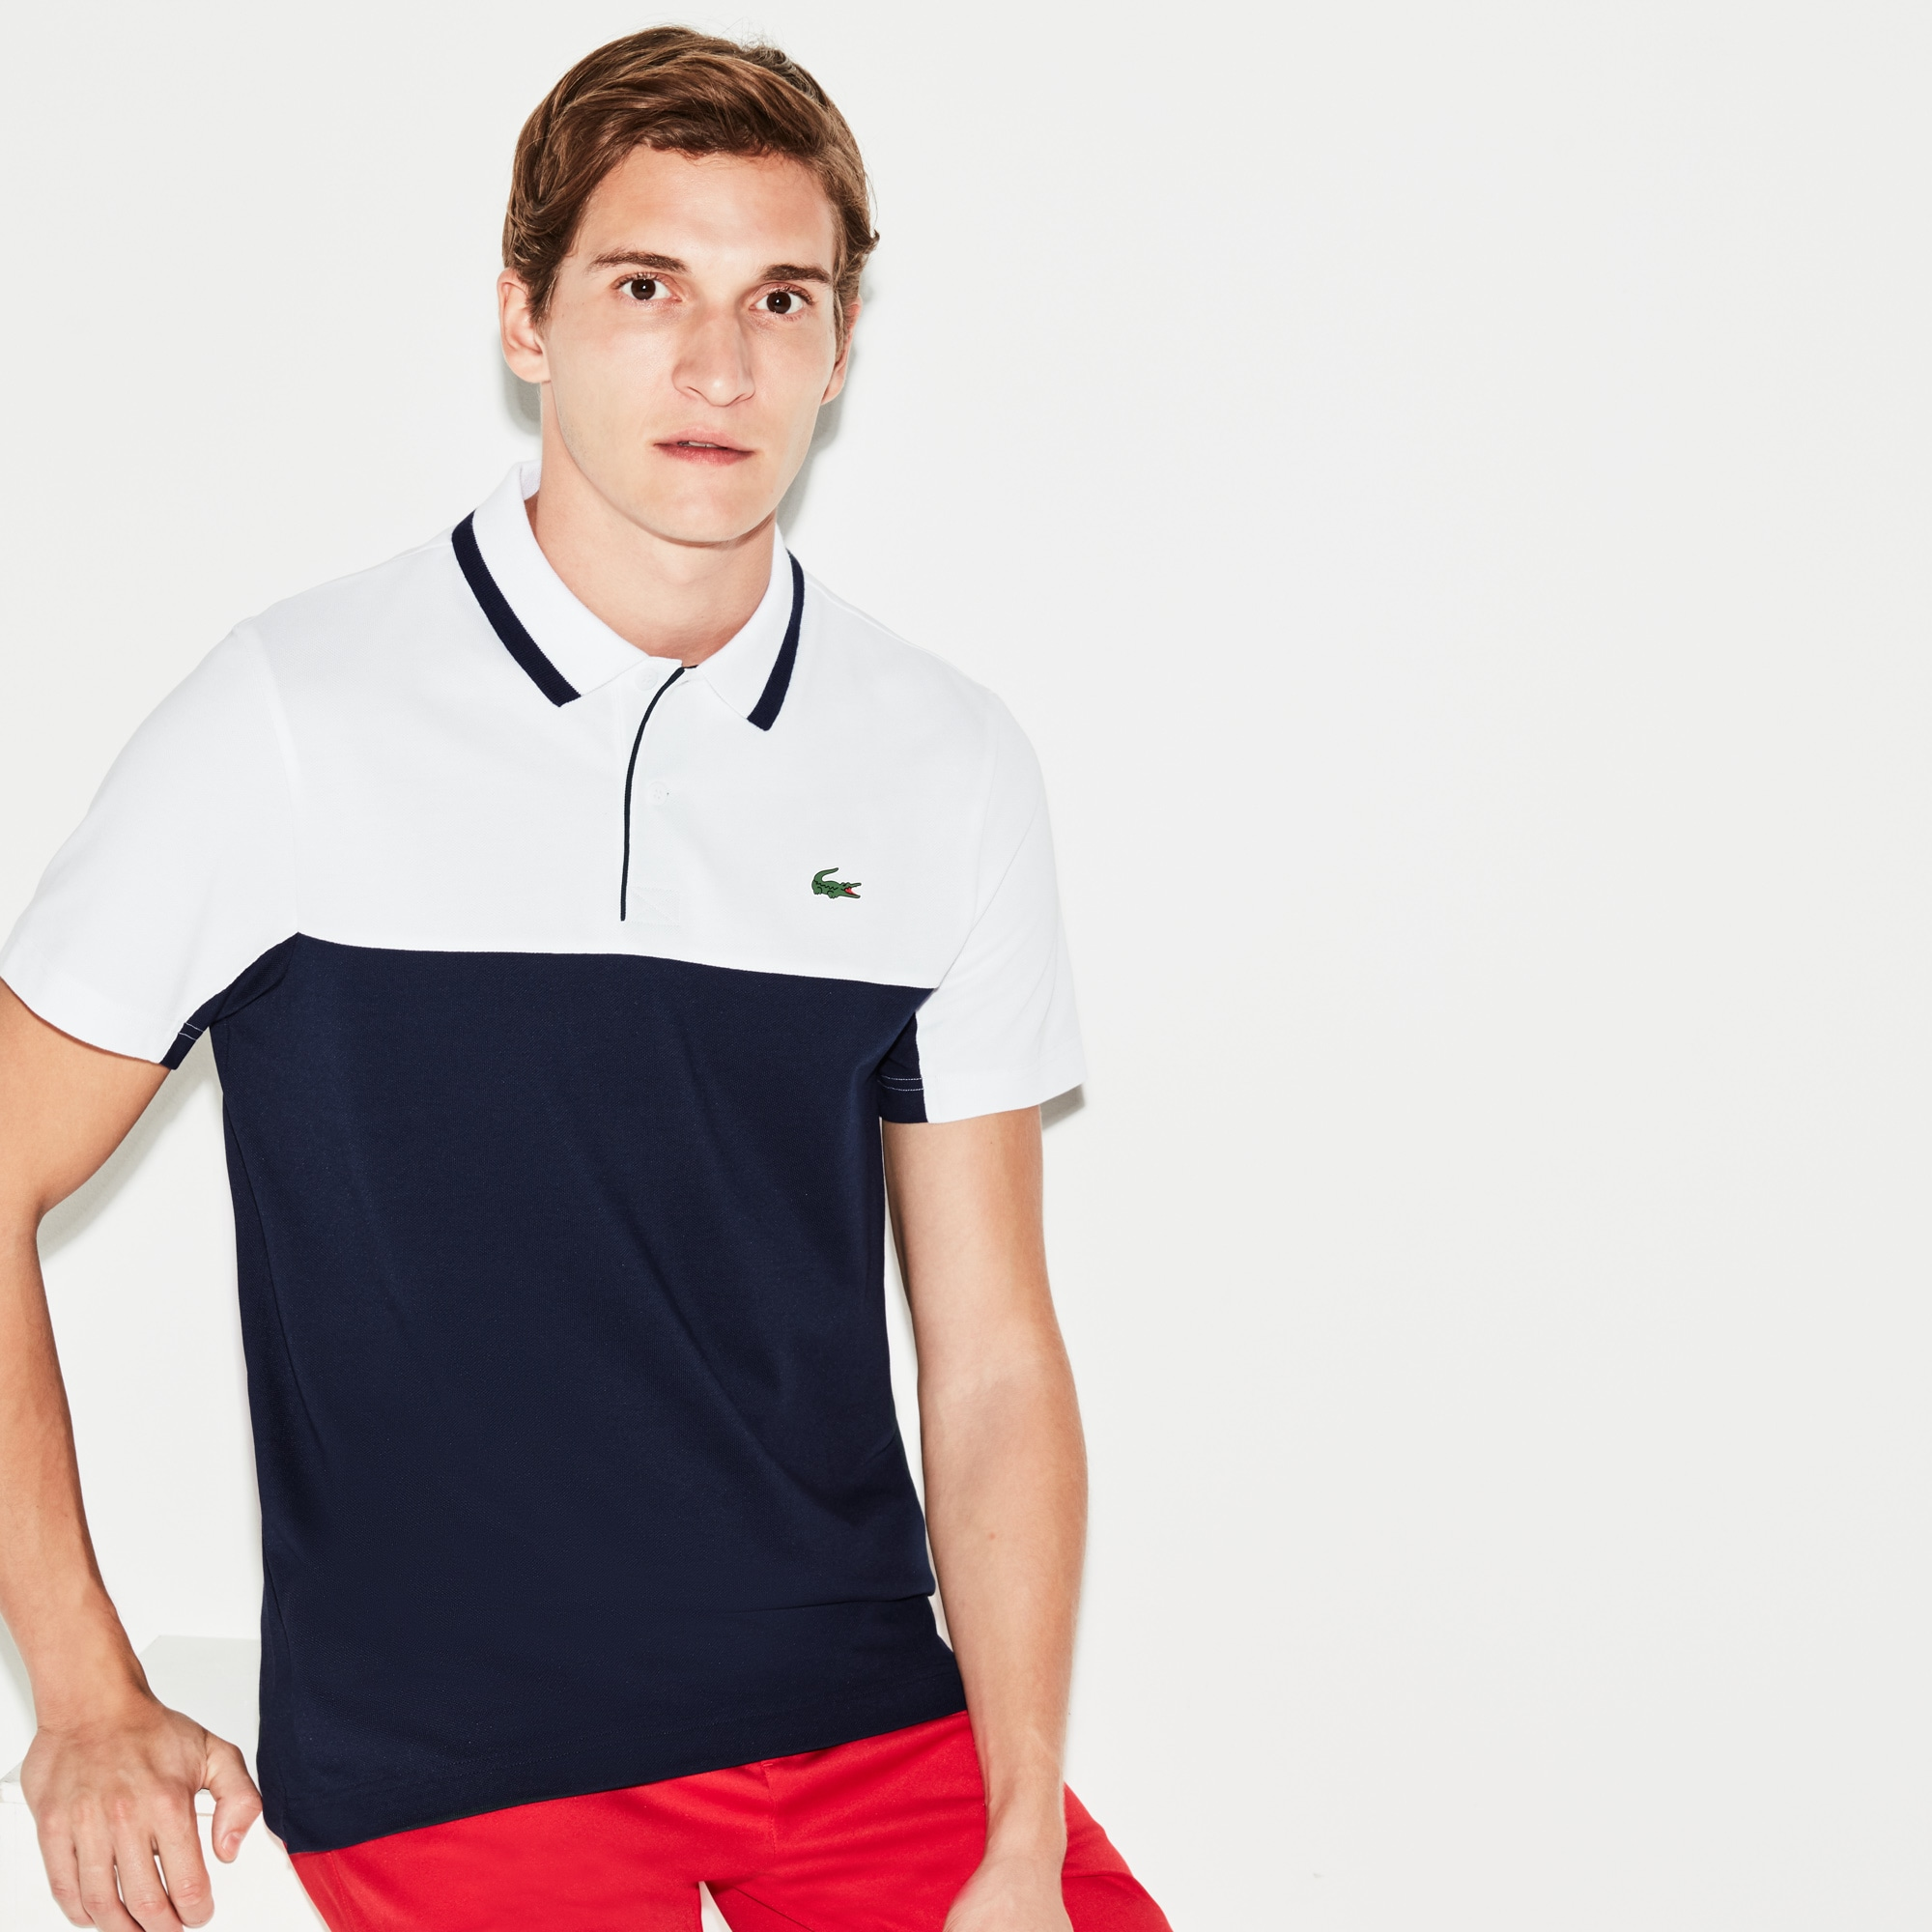 Men's Lacoste SPORT Colorblock Technical Petit Piqué Golf Polo Shirt